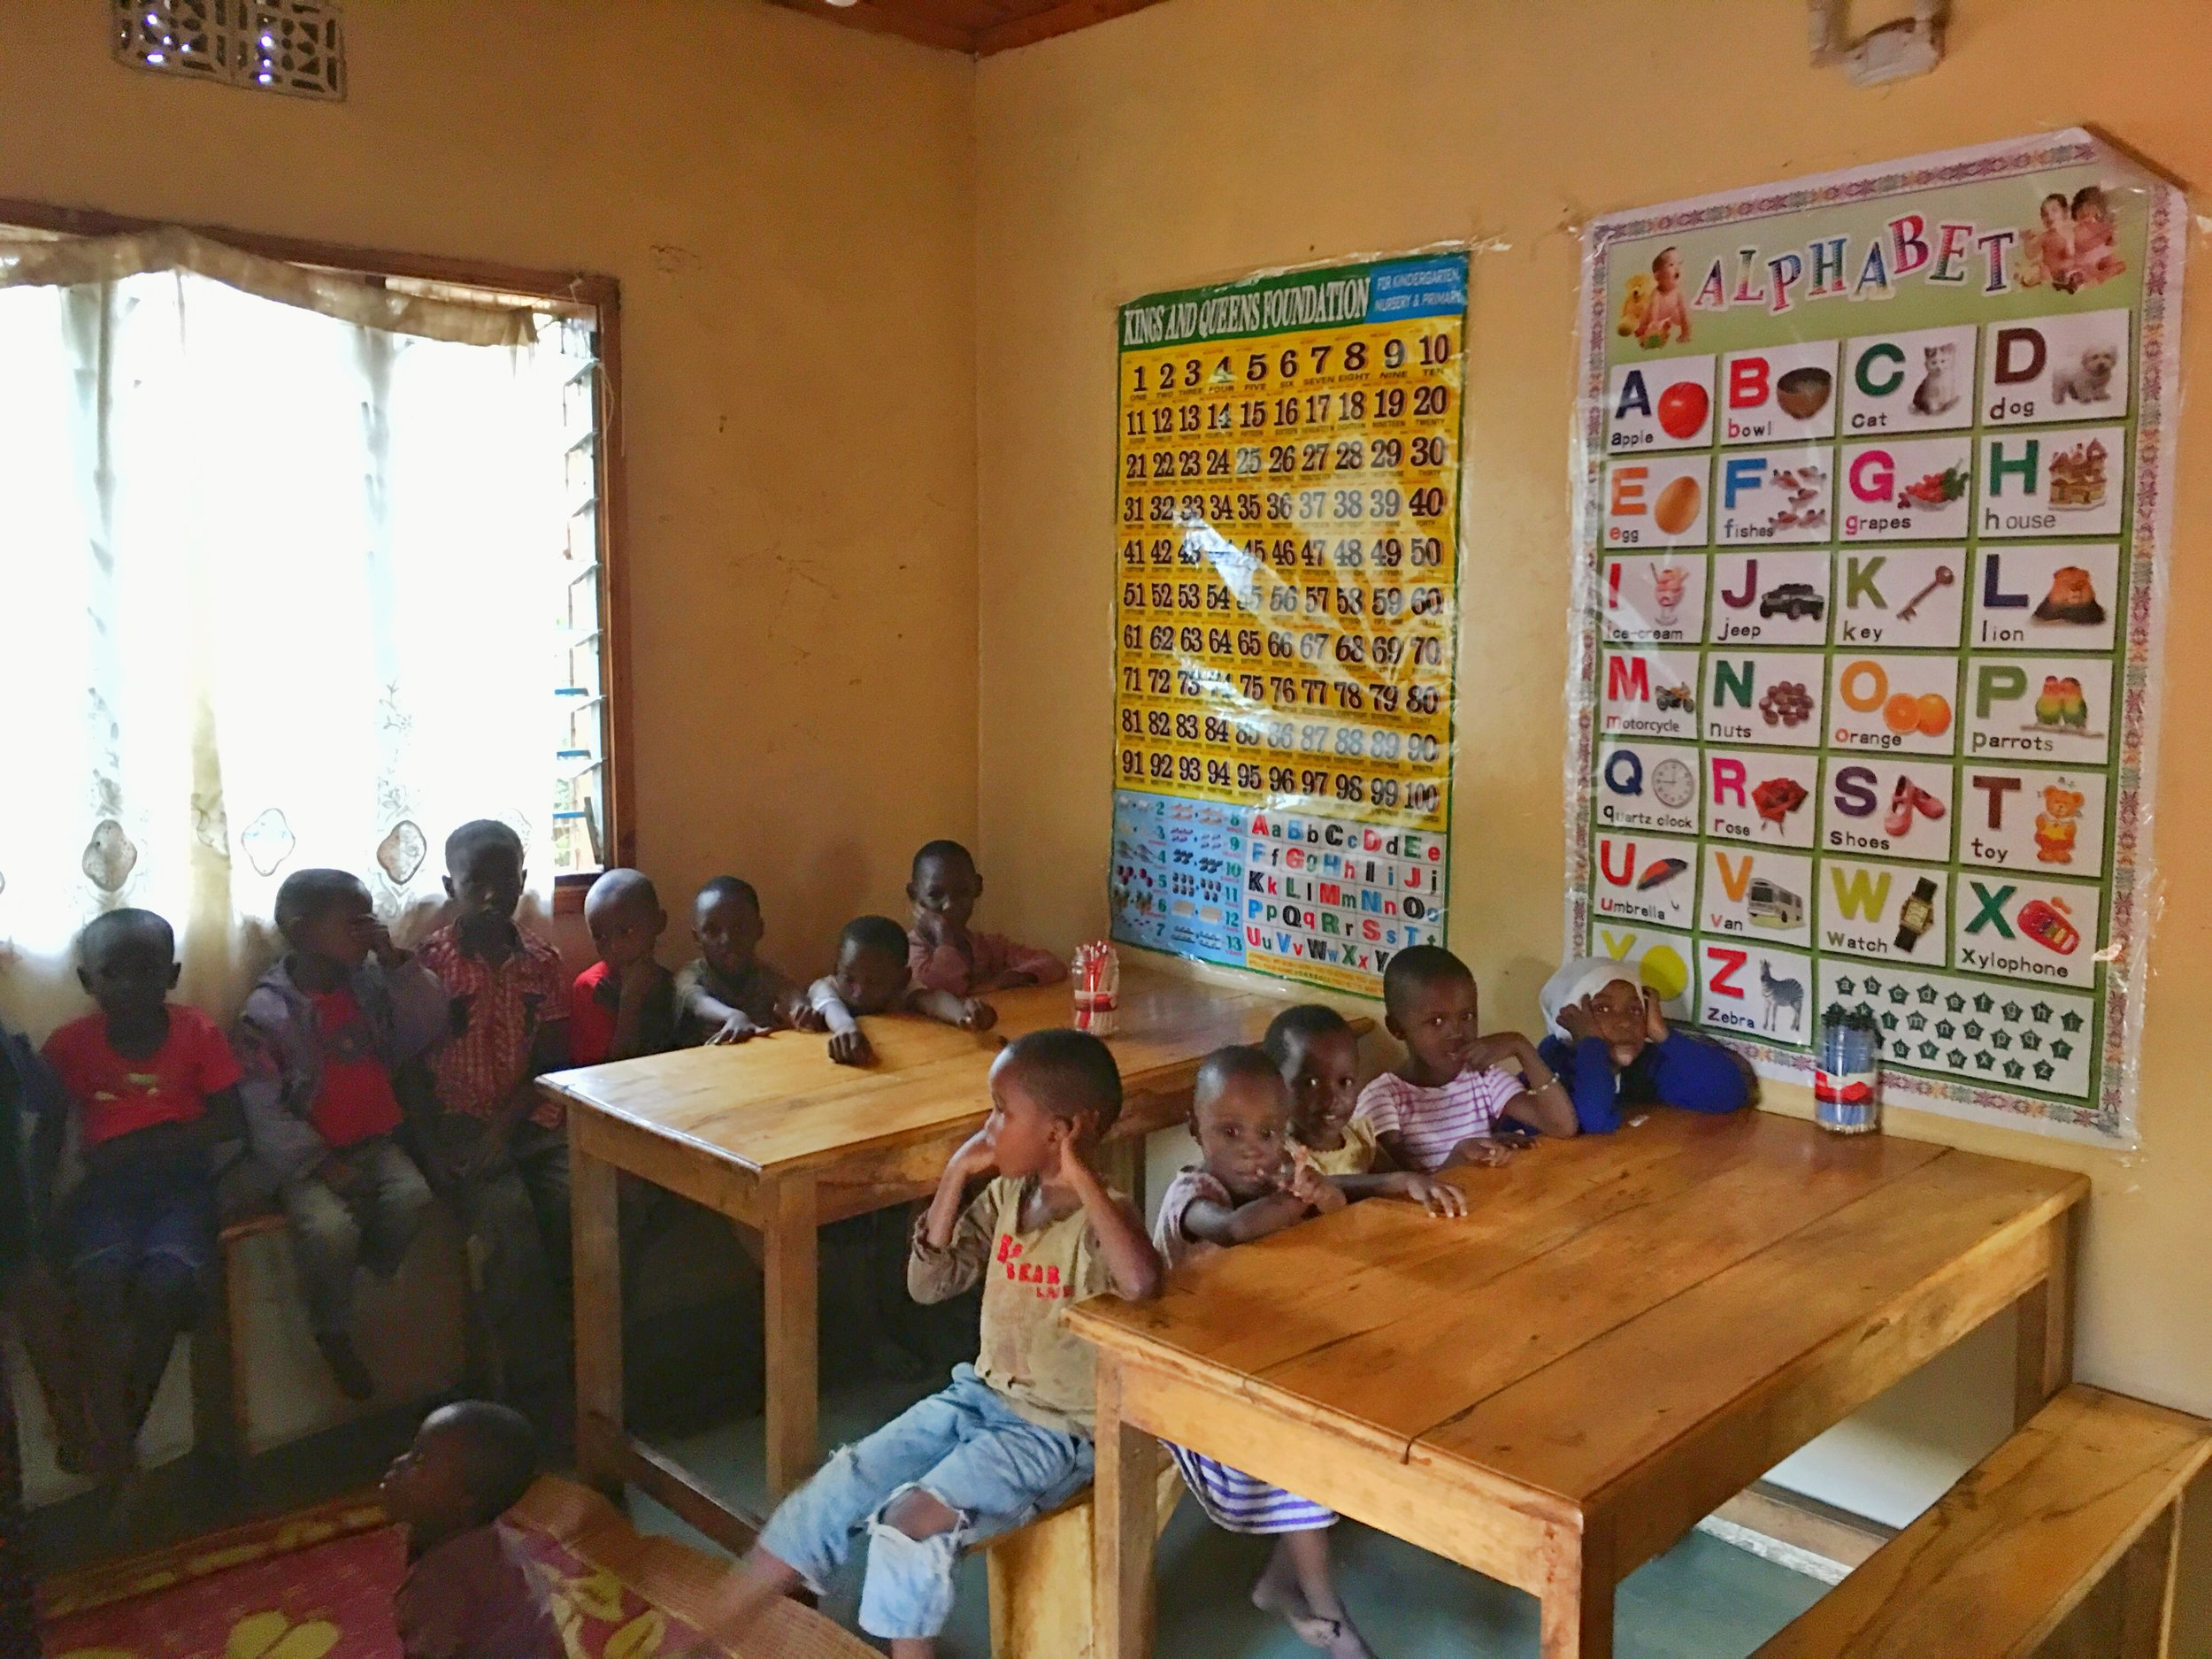 Our primary english class which is offered to all children who come to the Simbas Community Center.